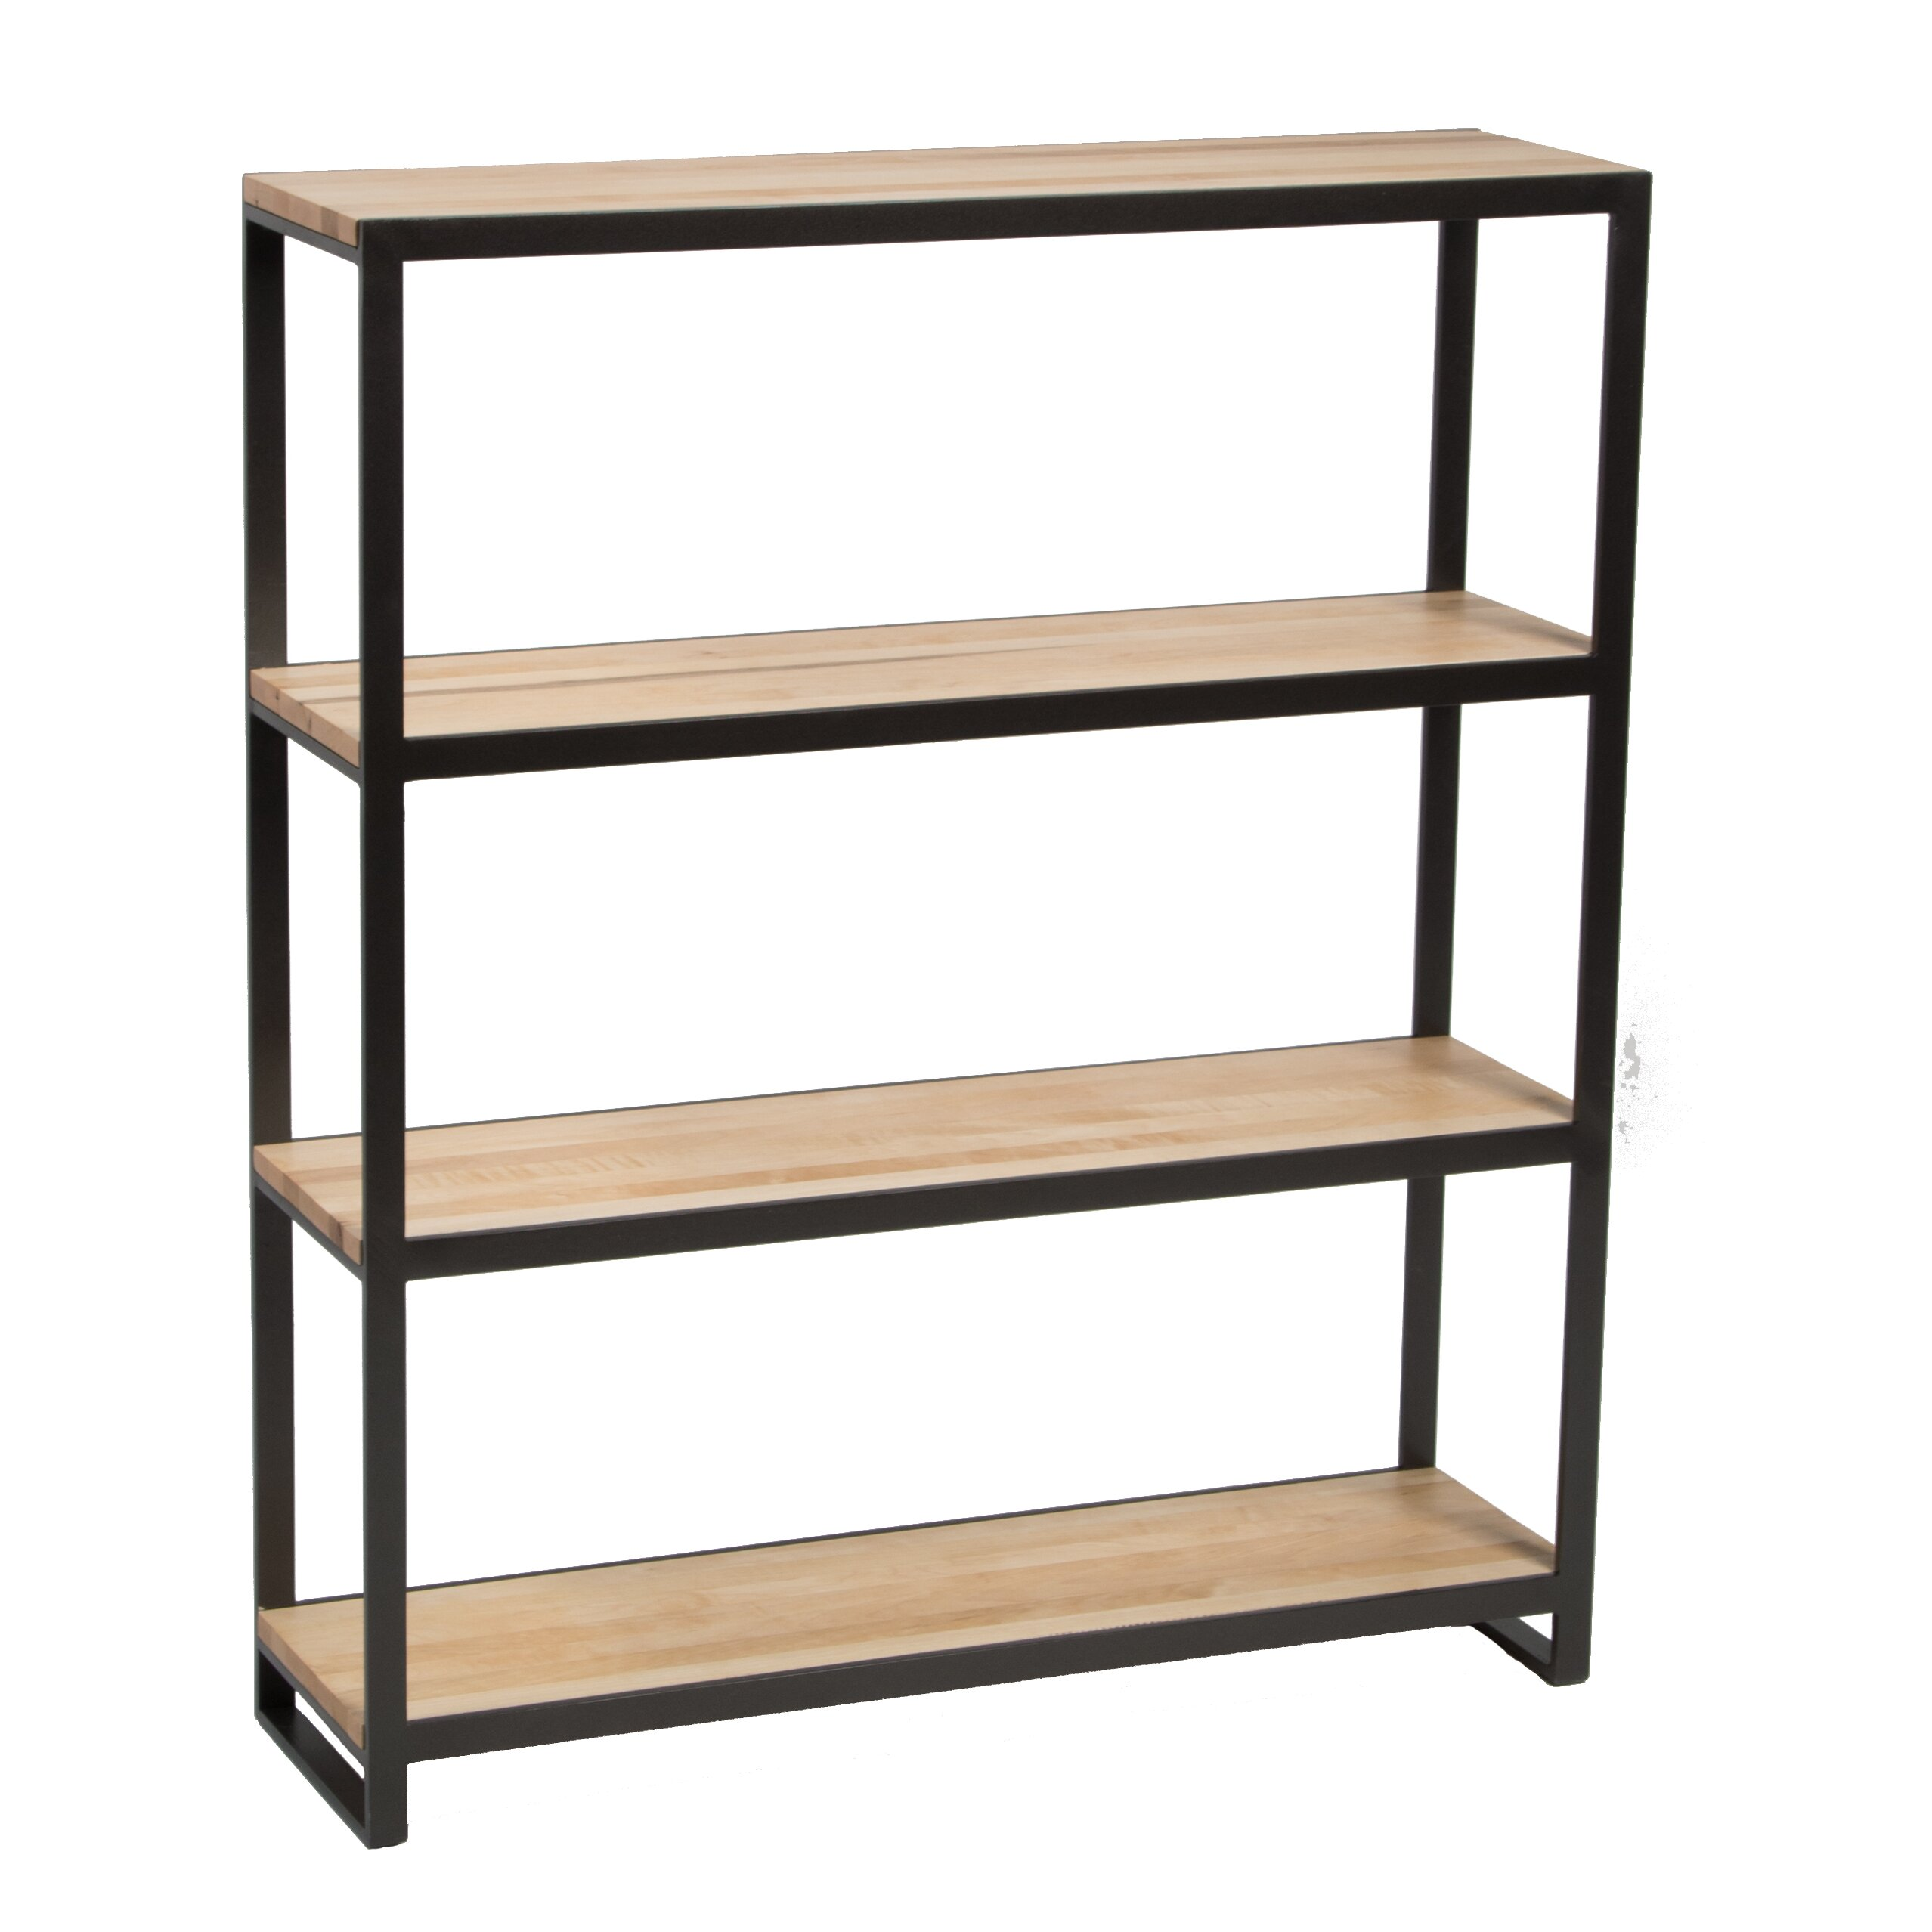 Sterk Furniture Company Ansted 39 Etagere Bookcase Wayfair